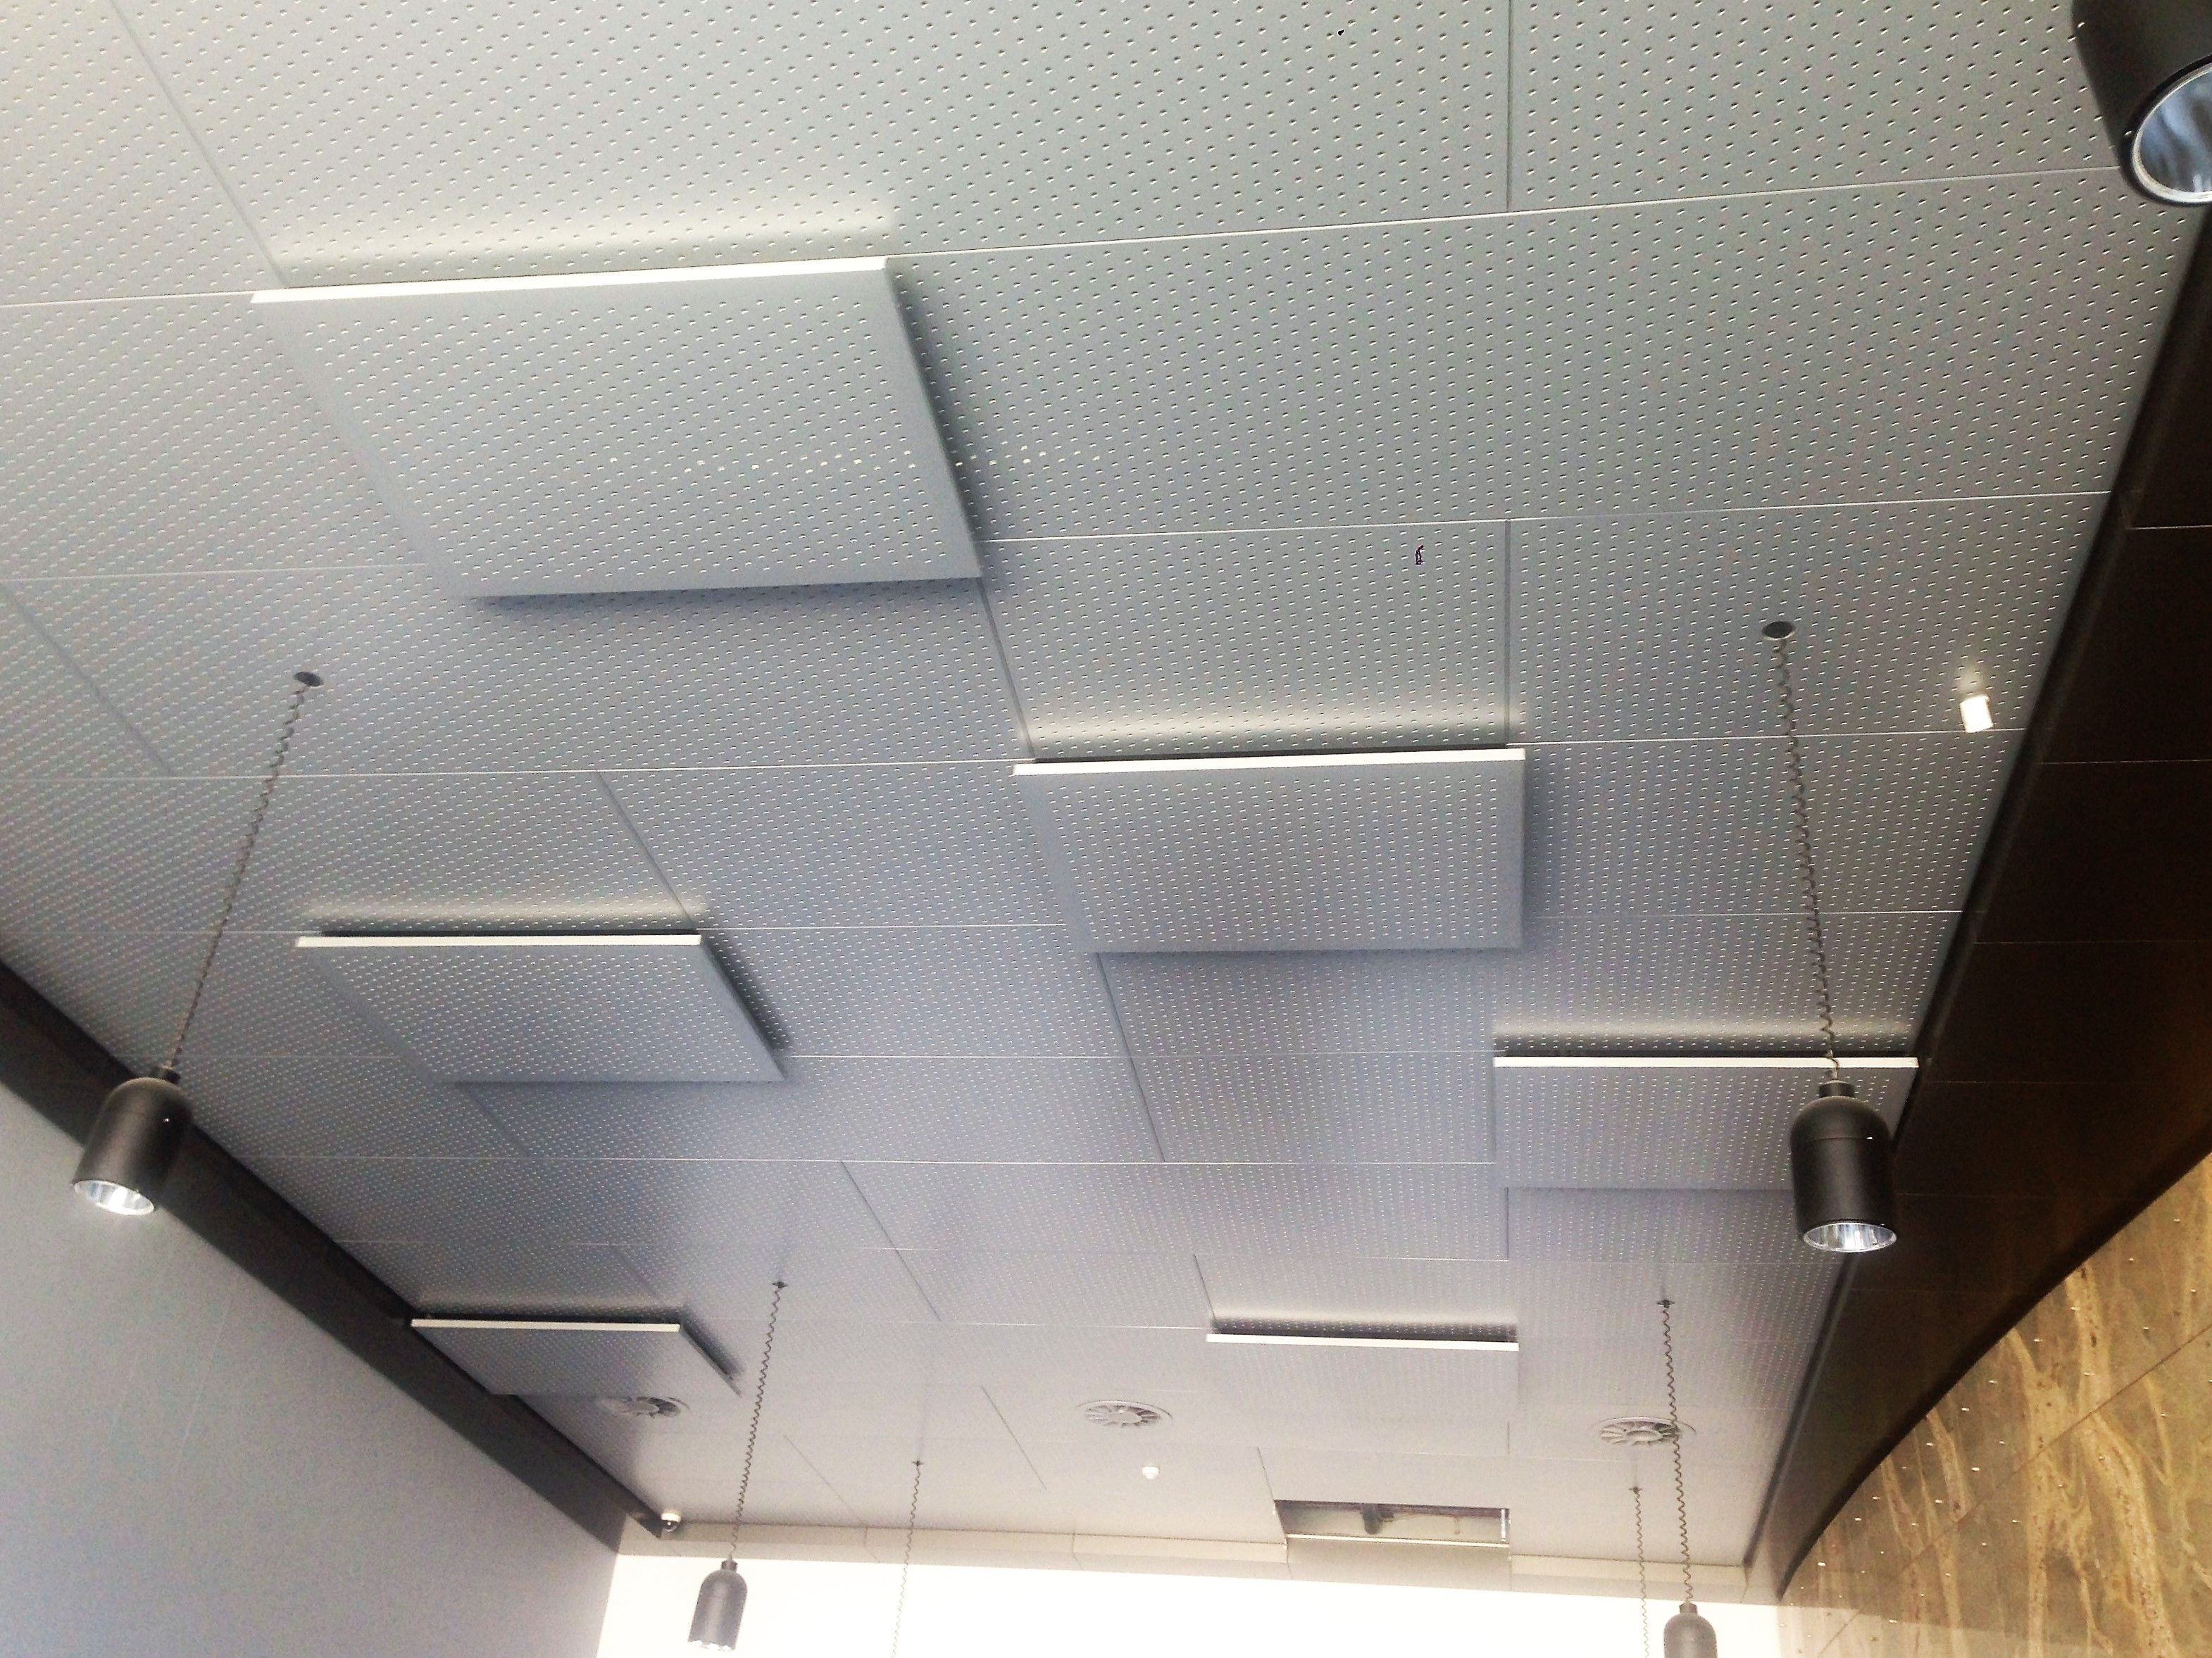 Africa aluminium structural systems installed ceiling structures africa aluminium structural systems installed ceiling structures for claud bosch architects in windhoek namibia using alubond dailygadgetfo Choice Image